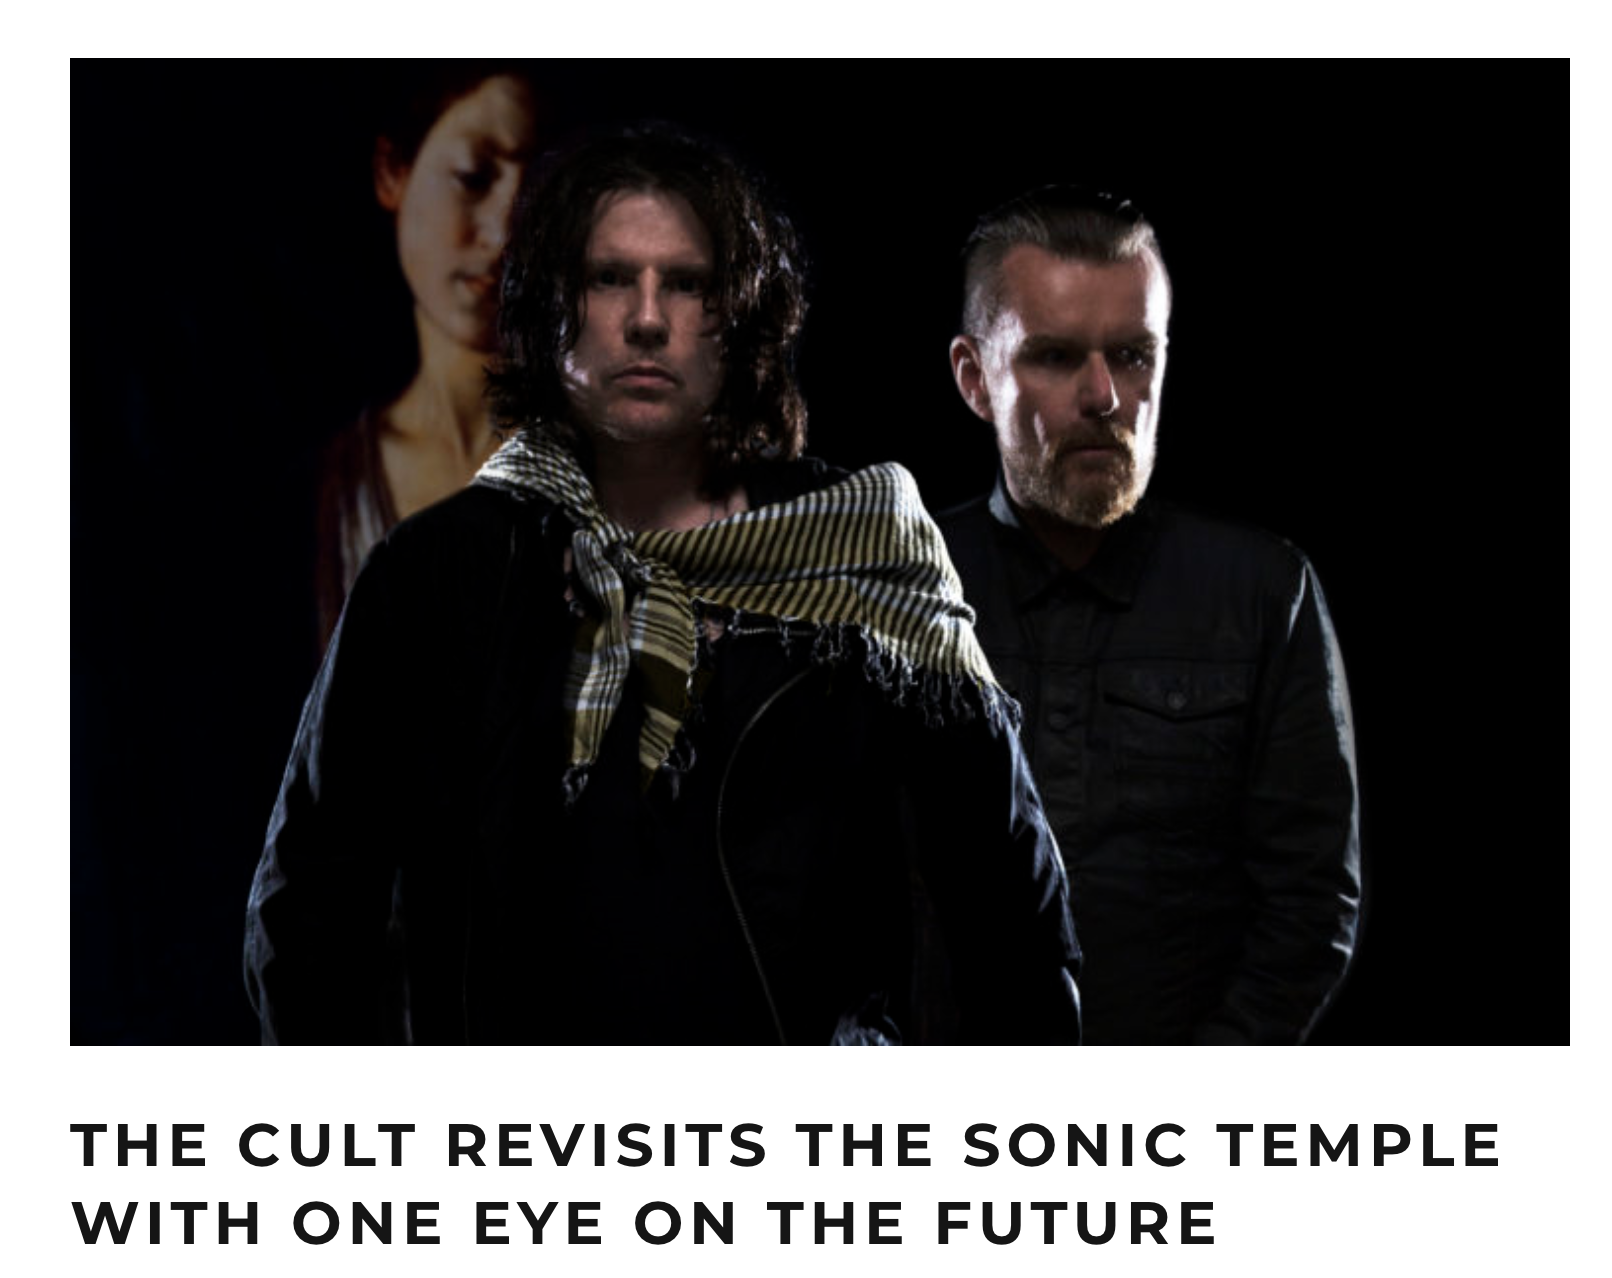 LA WEEKLY - THE CULT REVISITS THE SONIC TEMPLE WITH ONE EYE ON THE FUTURE